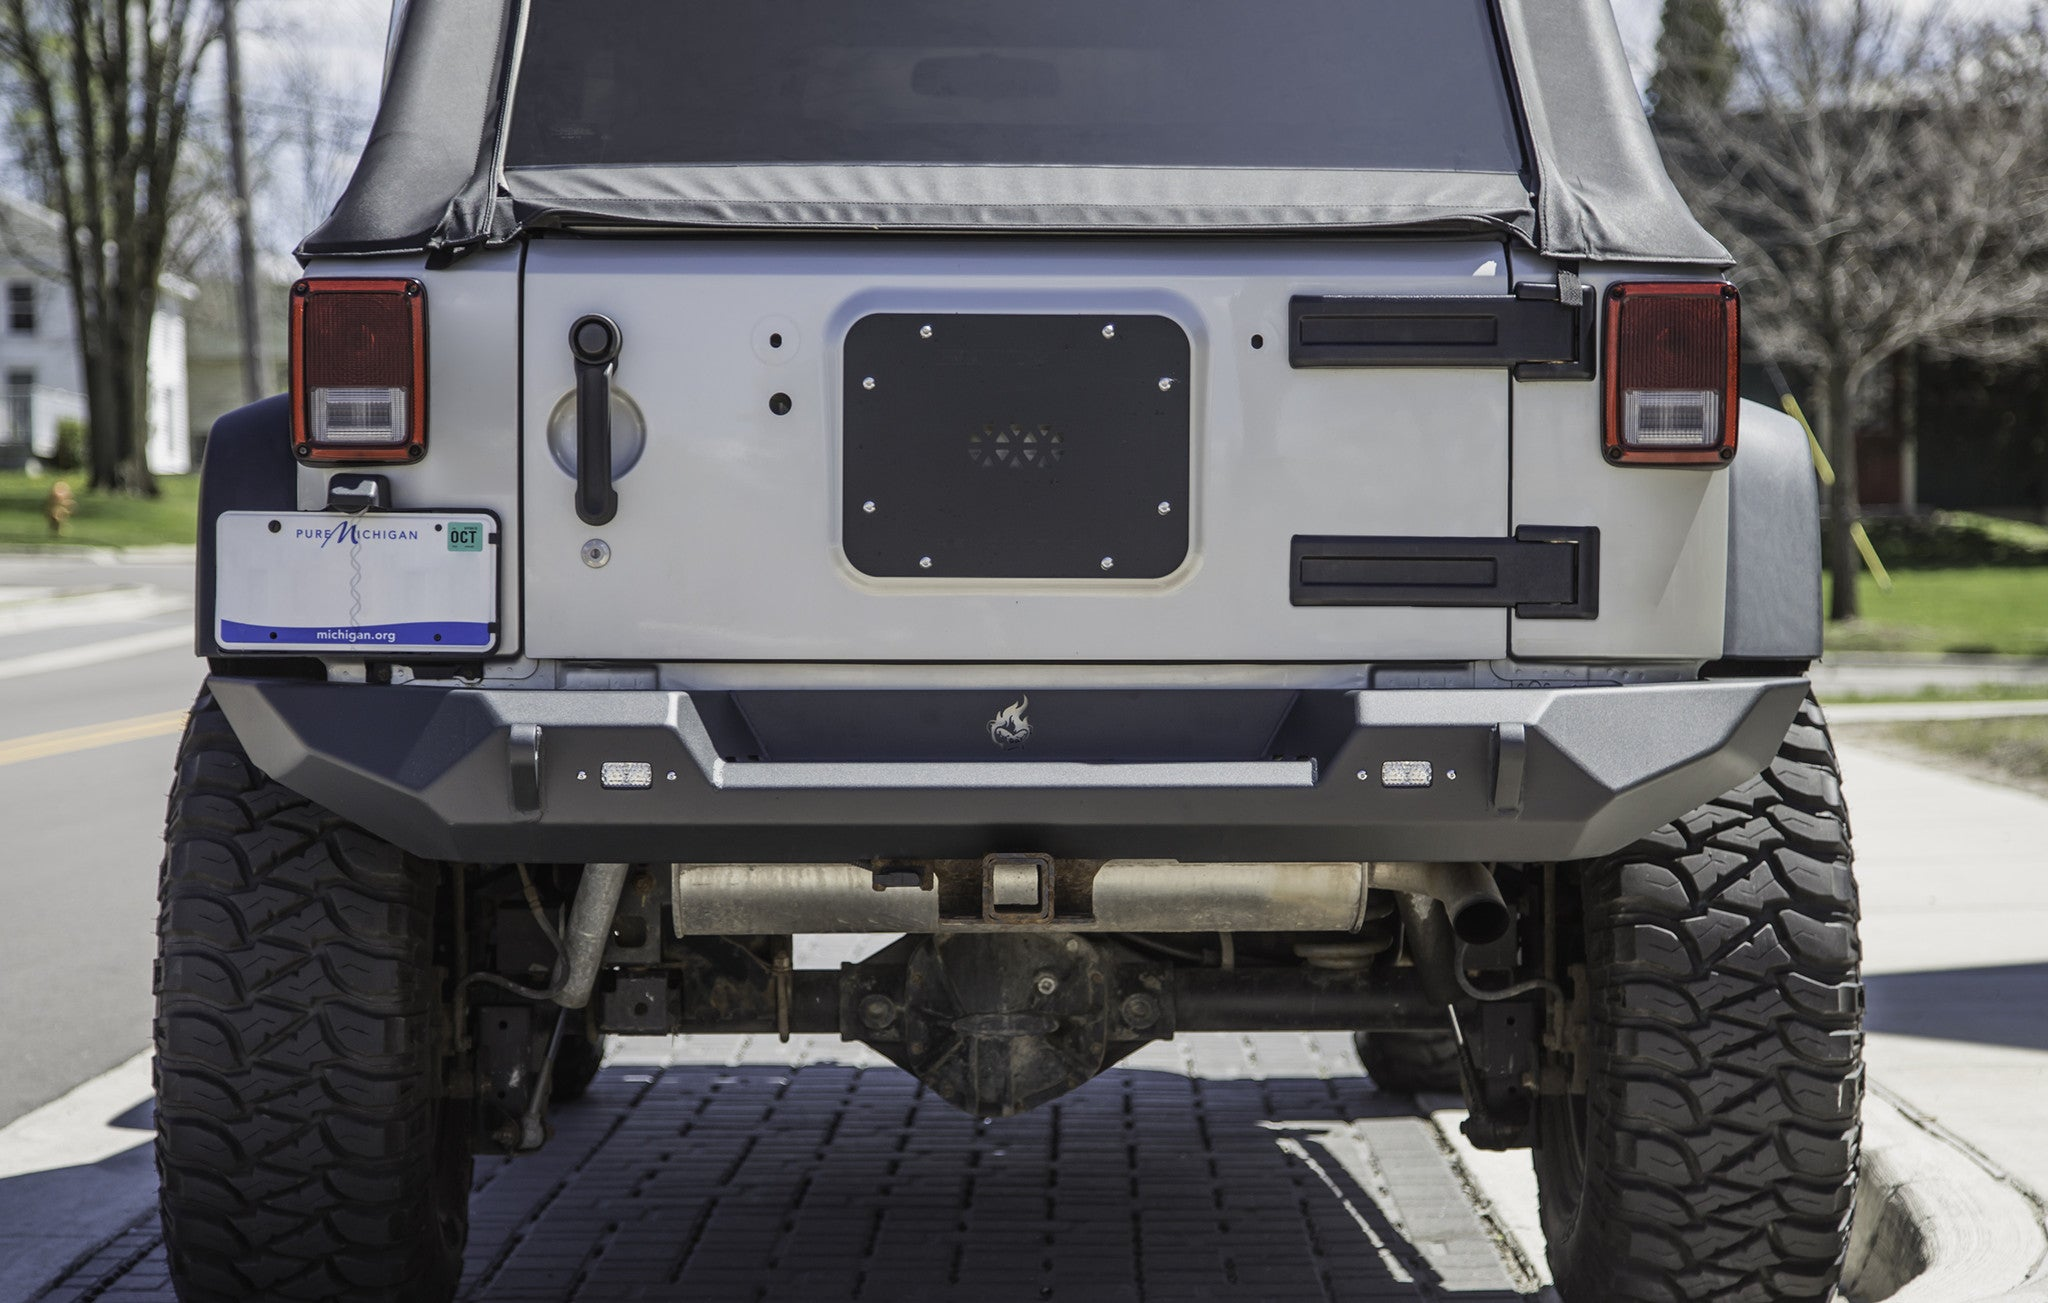 wrangler for front plate led bumpers details eag jk jeep itm bumper width with about full winch